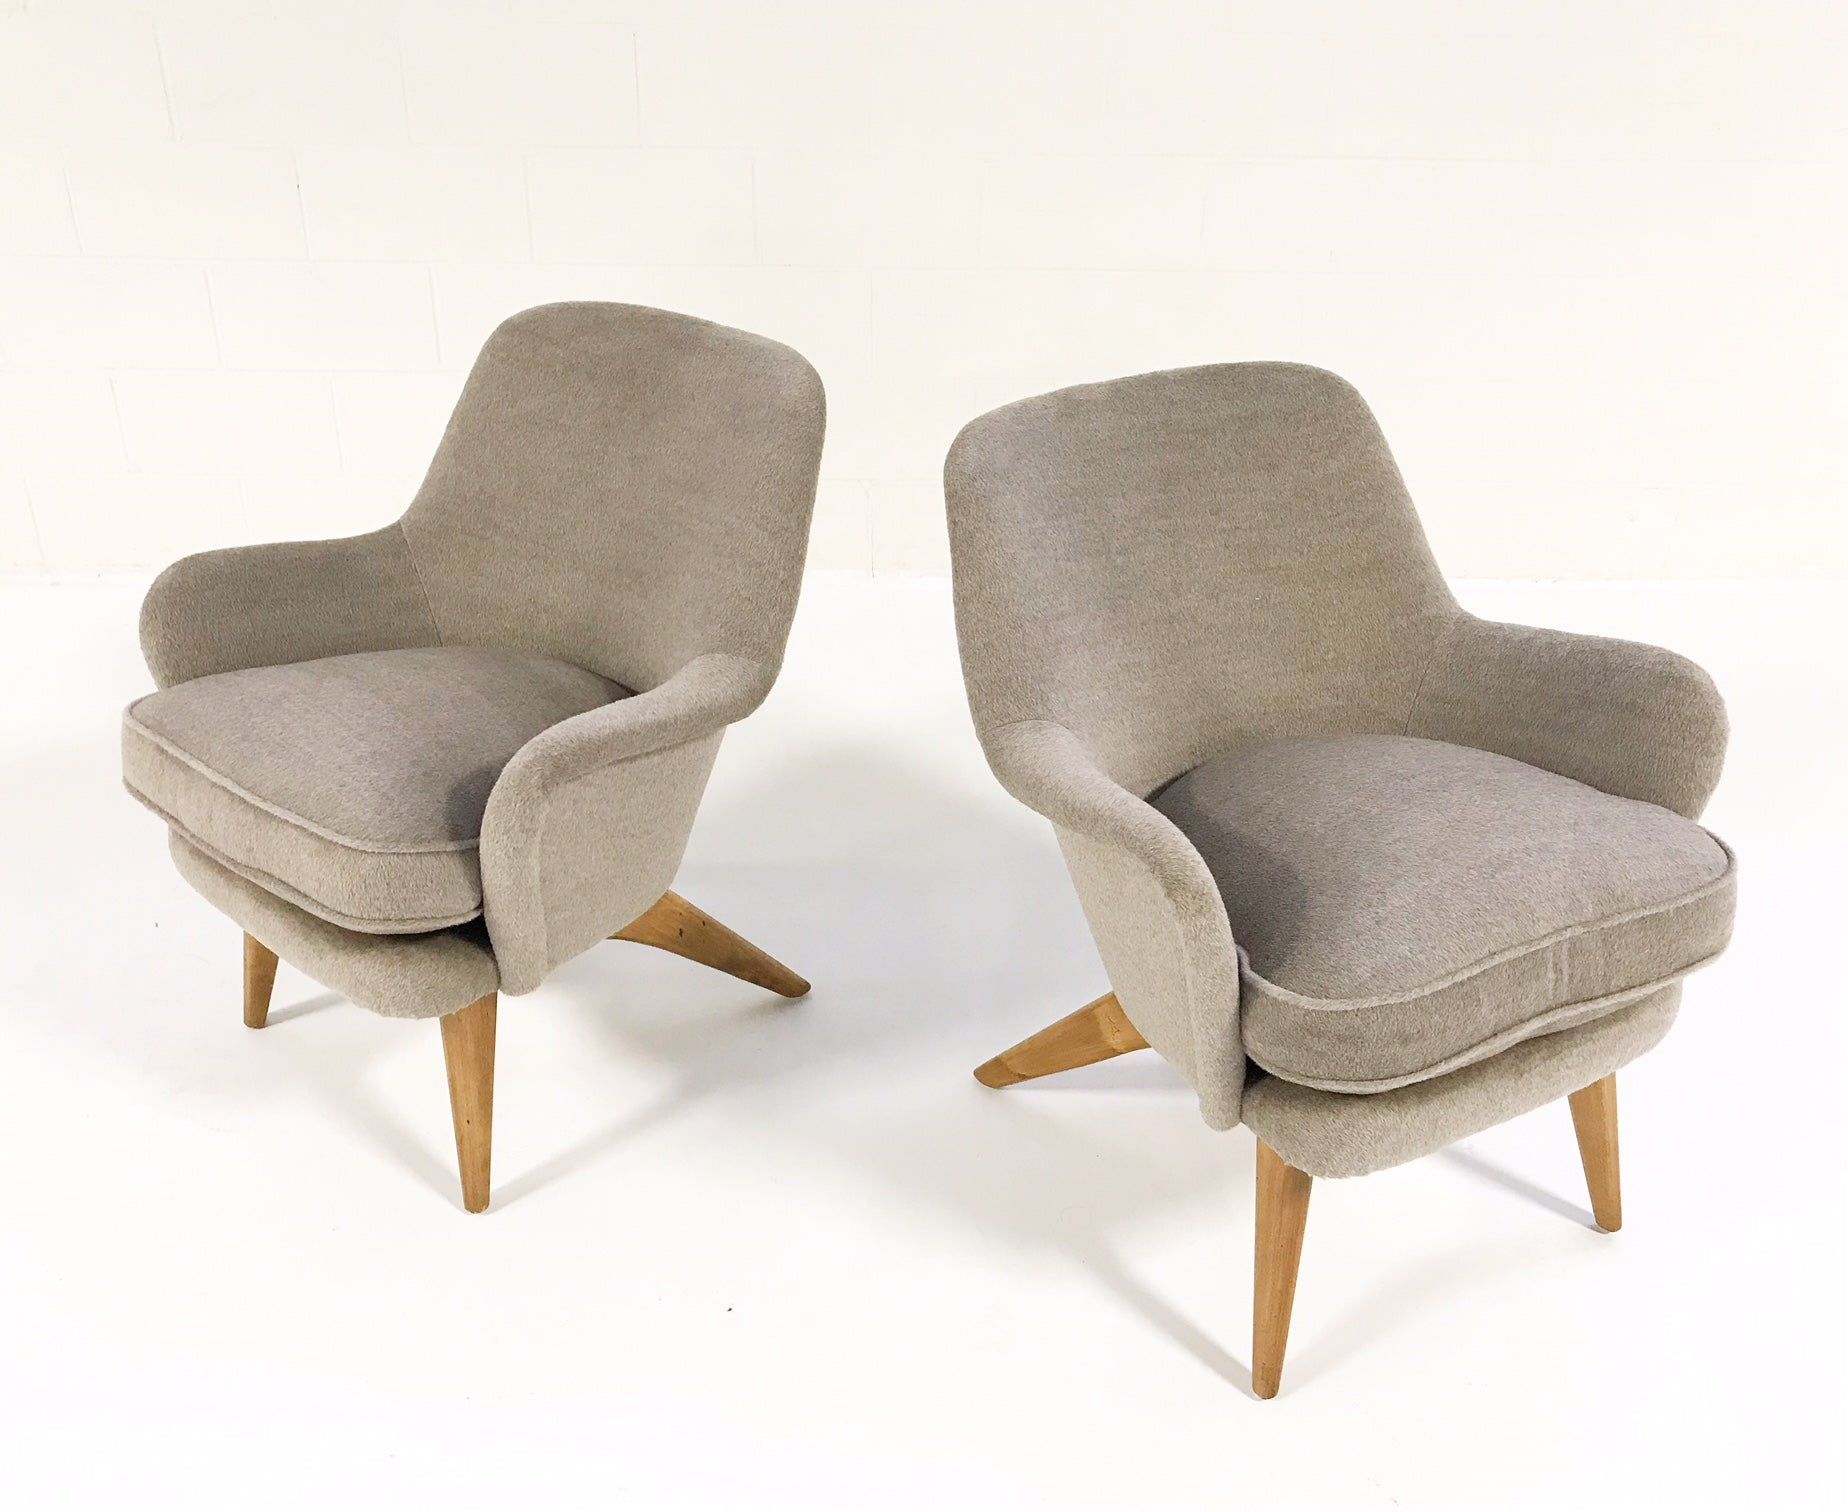 Pedro Armchairs in Loro Piana Alpaca Wool, pair - FORSYTH